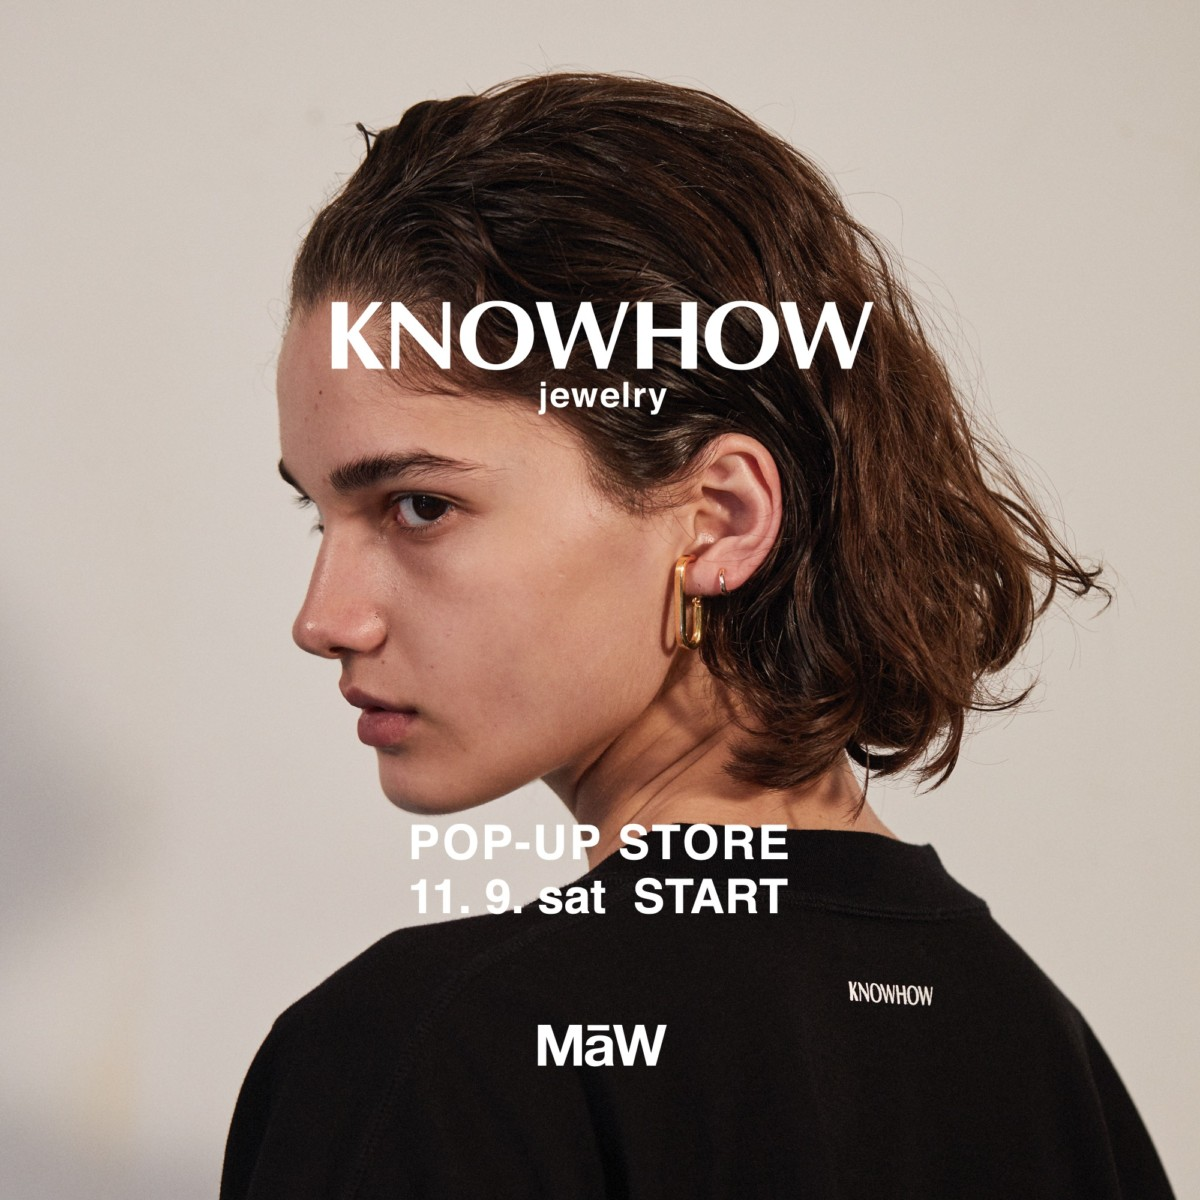 KNOWHOW_ビジュアル2